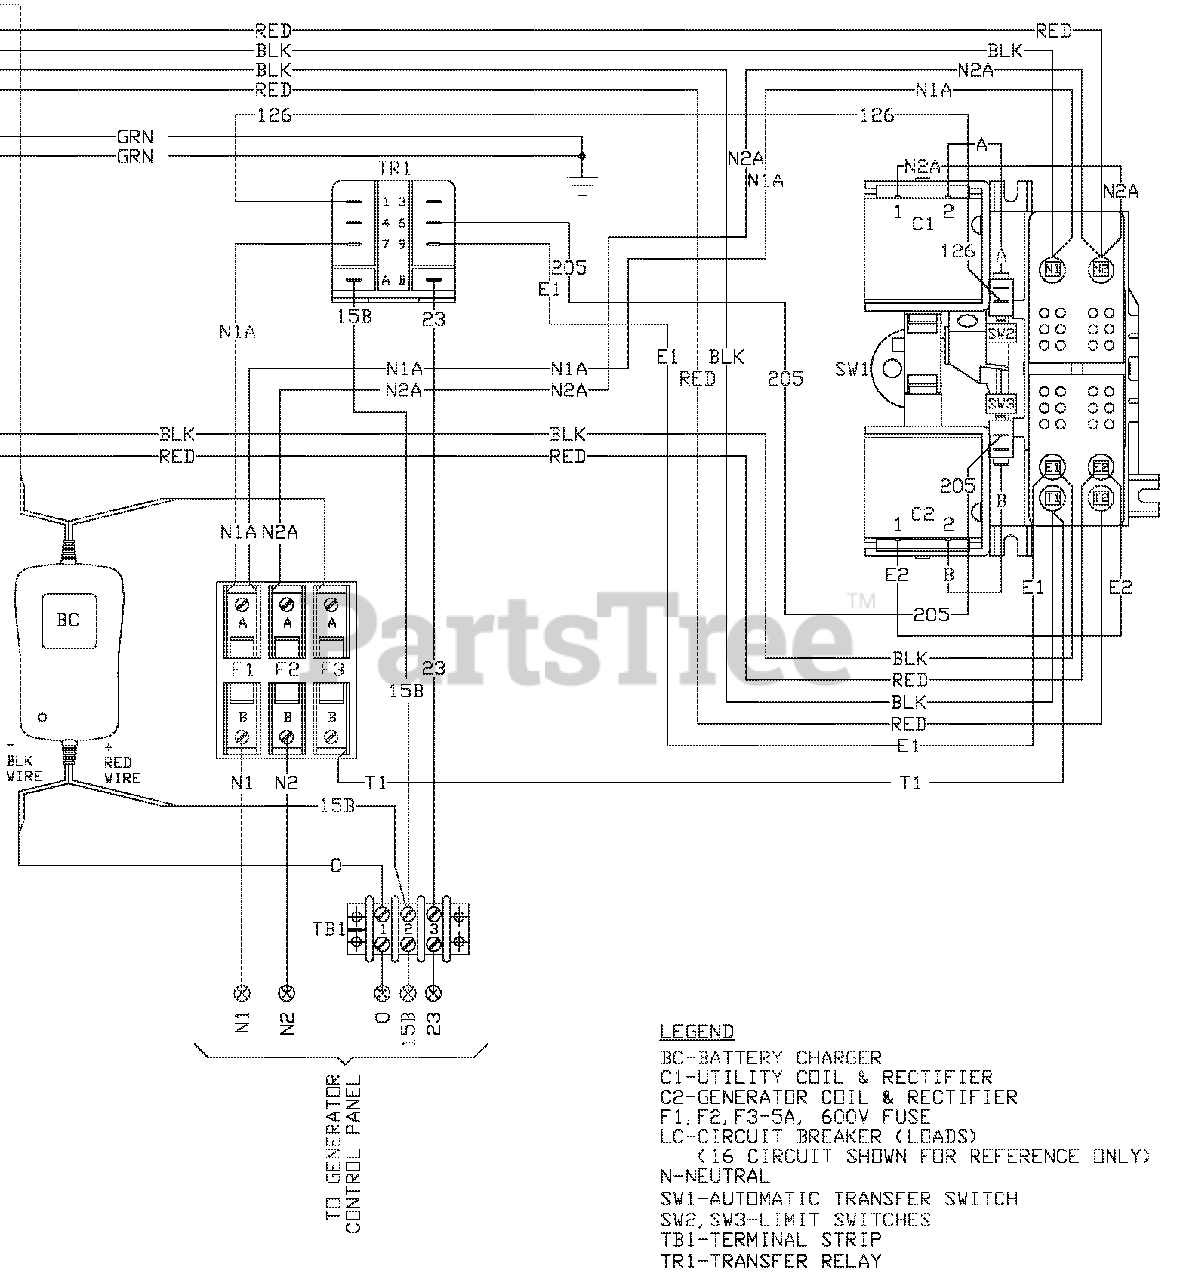 Generac RTSH100A1 - Generac Power Transfer Switch (SN: 5118395 - 5167125)  (2016) Wiring - Diagram (0G7958) Parts Lookup with Diagrams | PartsTreePartsTree